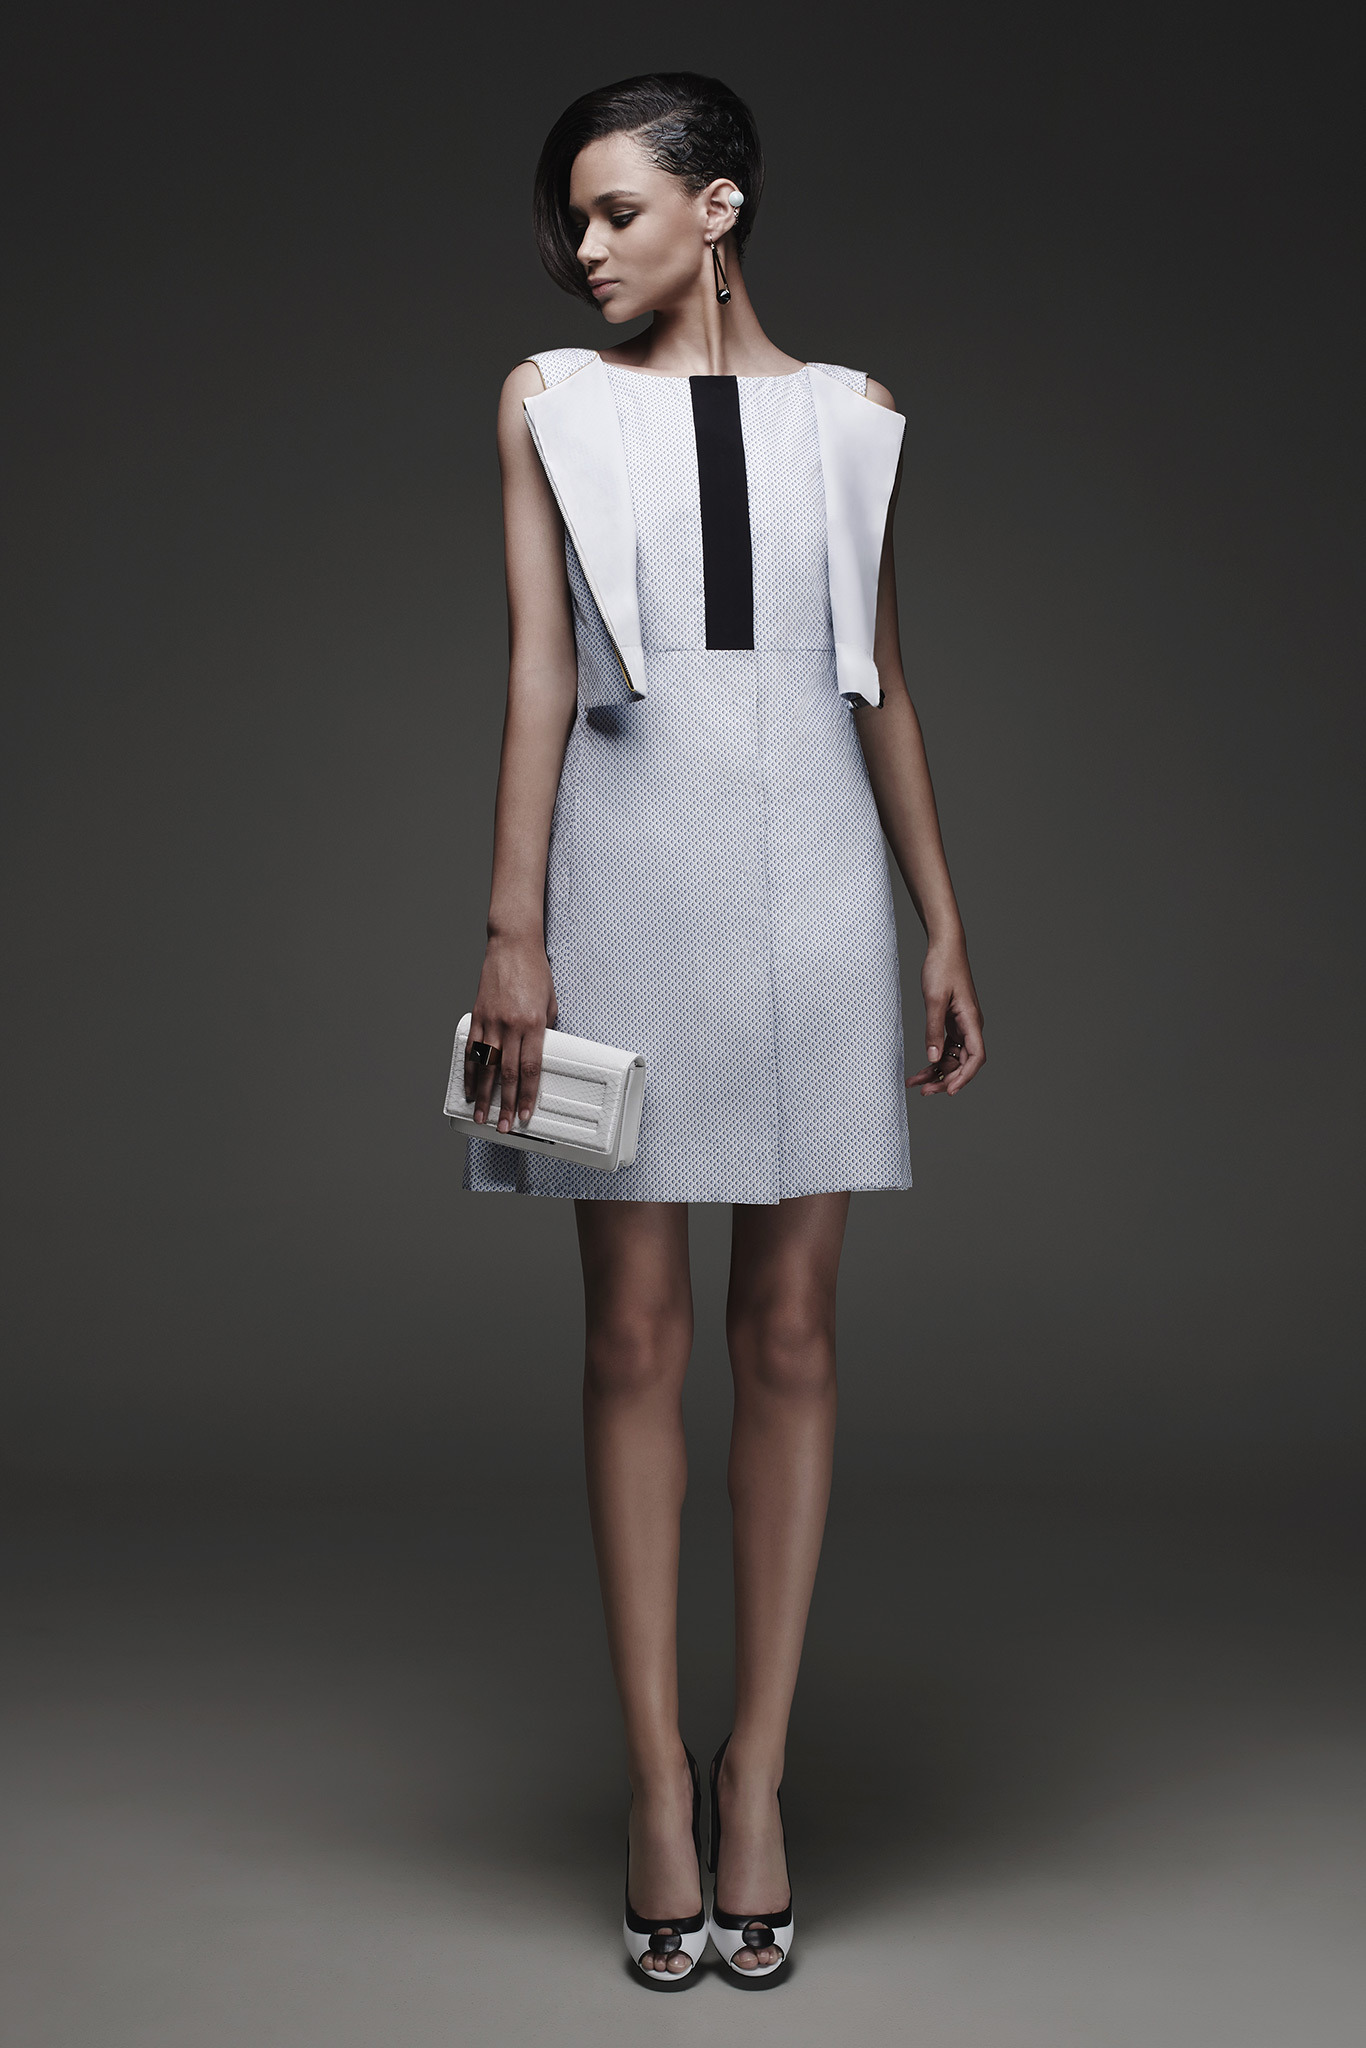 Fendi-resort-2015_binx-walton-campaigns-76